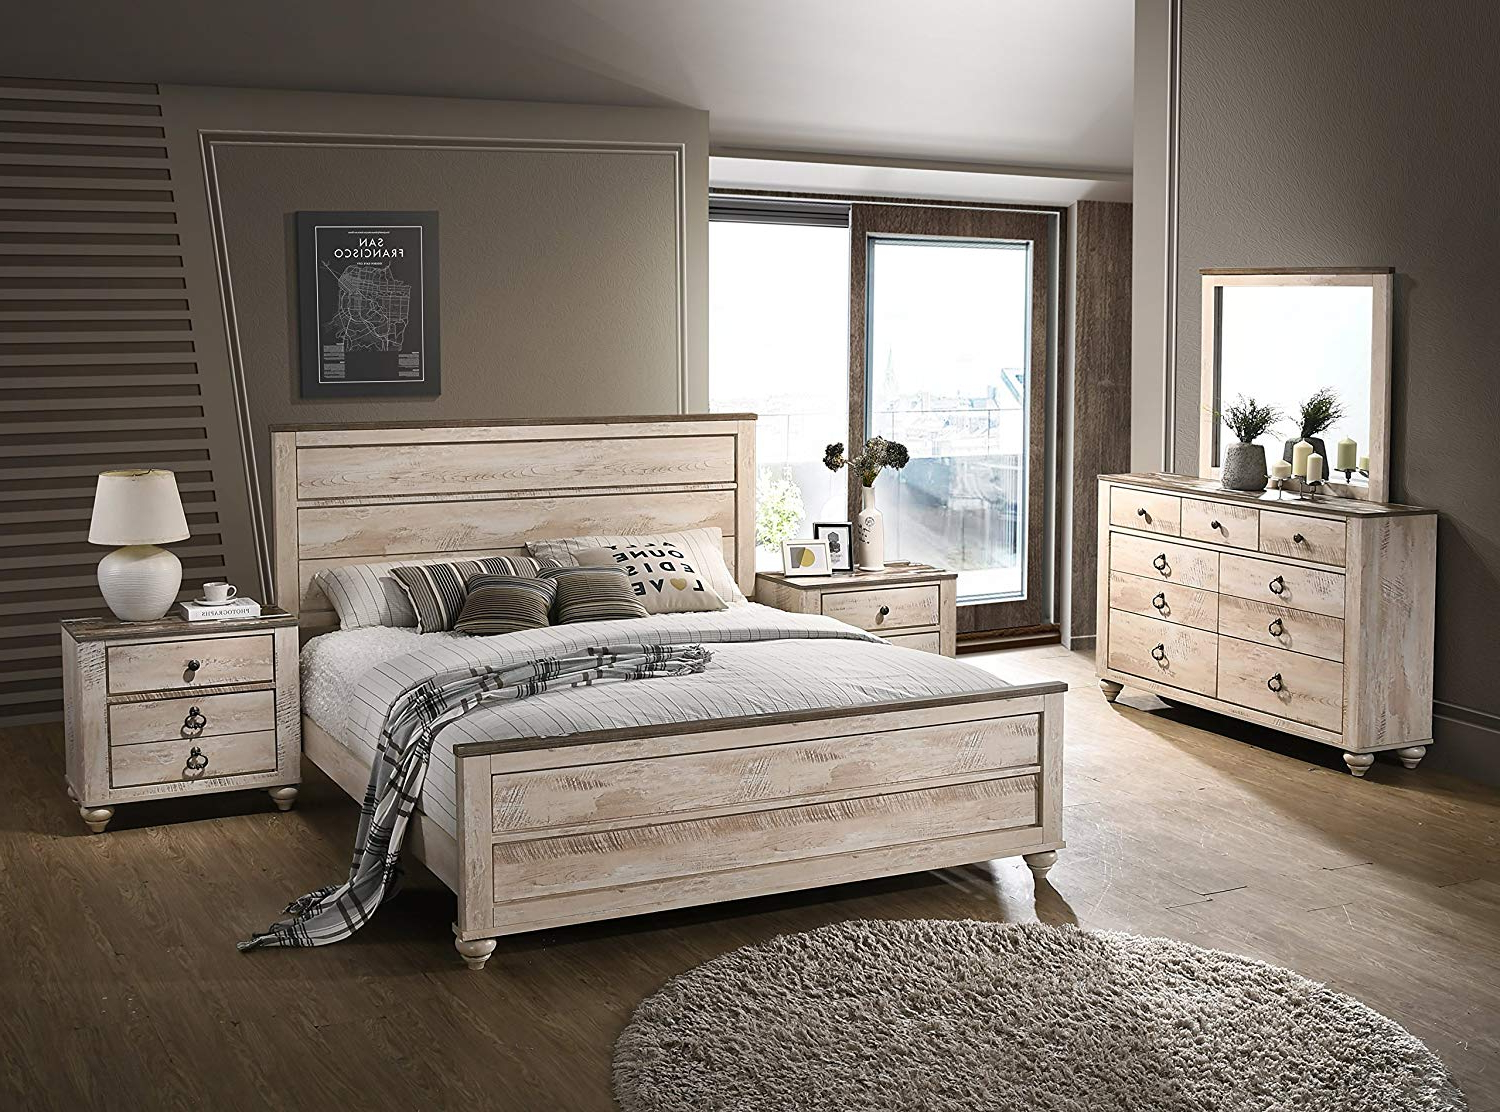 Roundhill Furniture Imerland Contemporary White Wash Finish 5 Piece Bedroom Set, Intended For Preferred Walnut And Antique White Finish Contemporary Country Dining Tables (View 26 of 30)